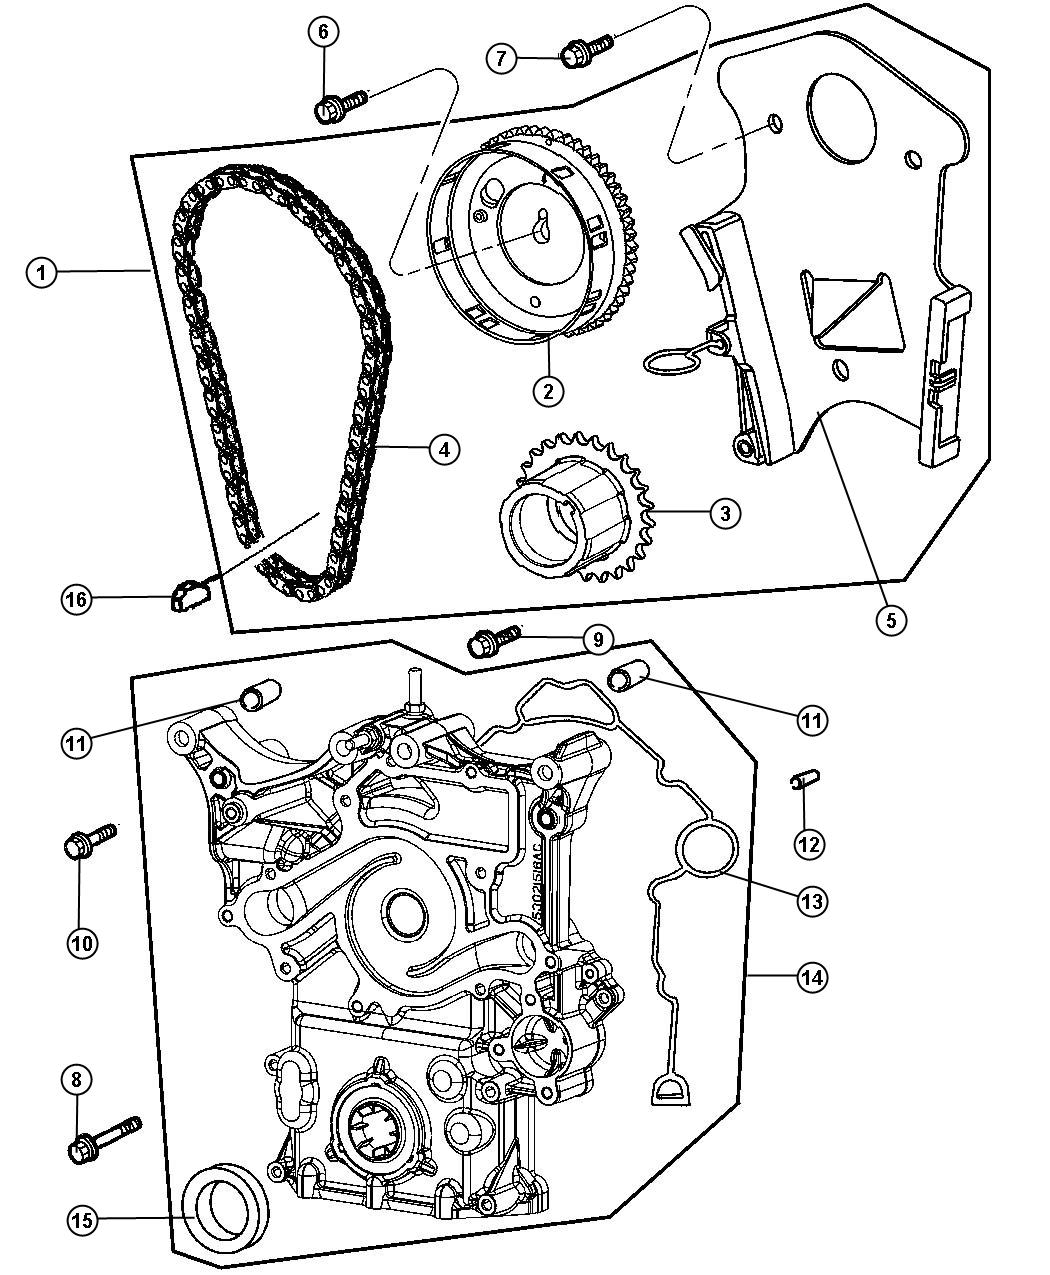 Ford Taurus Fuse Schematic